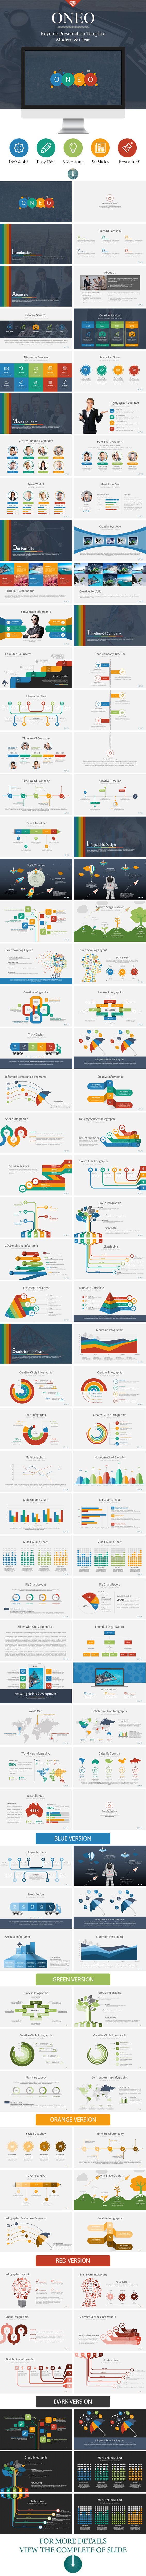 GraphicRiver Oneo Keynote Template 9985615